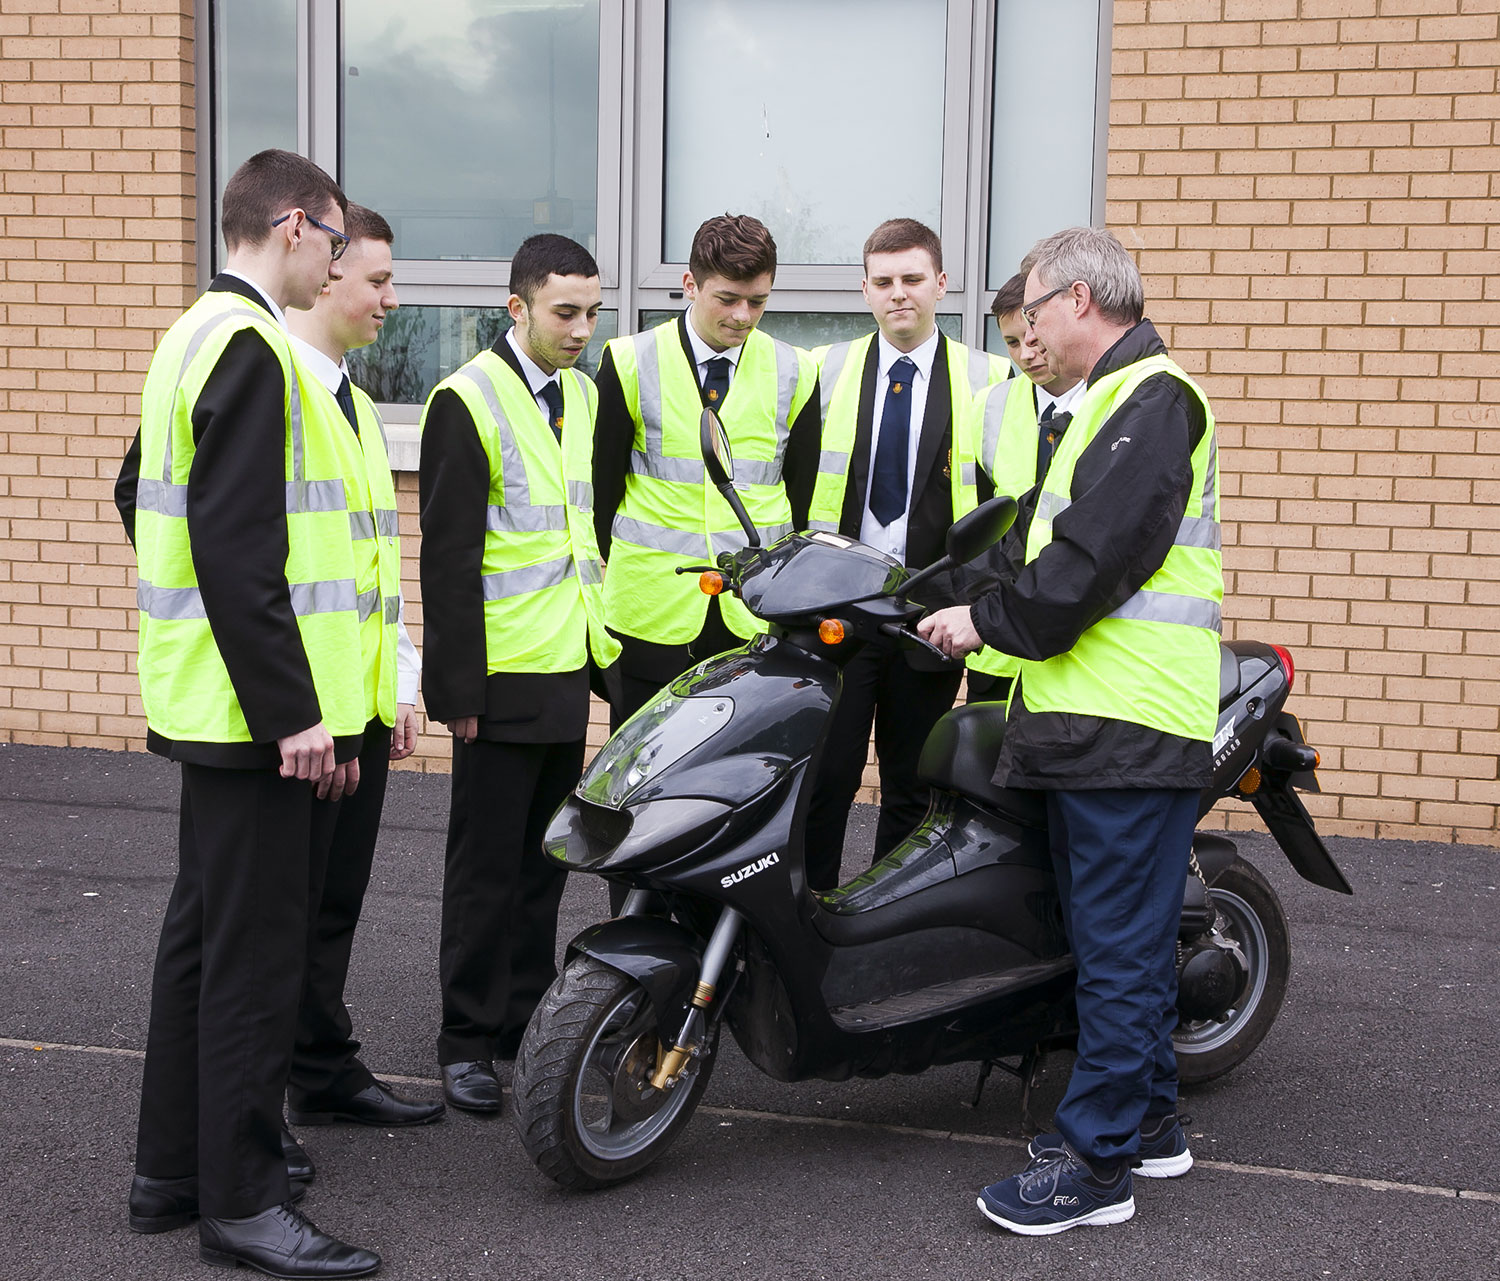 Students-Moped-1540.jpg